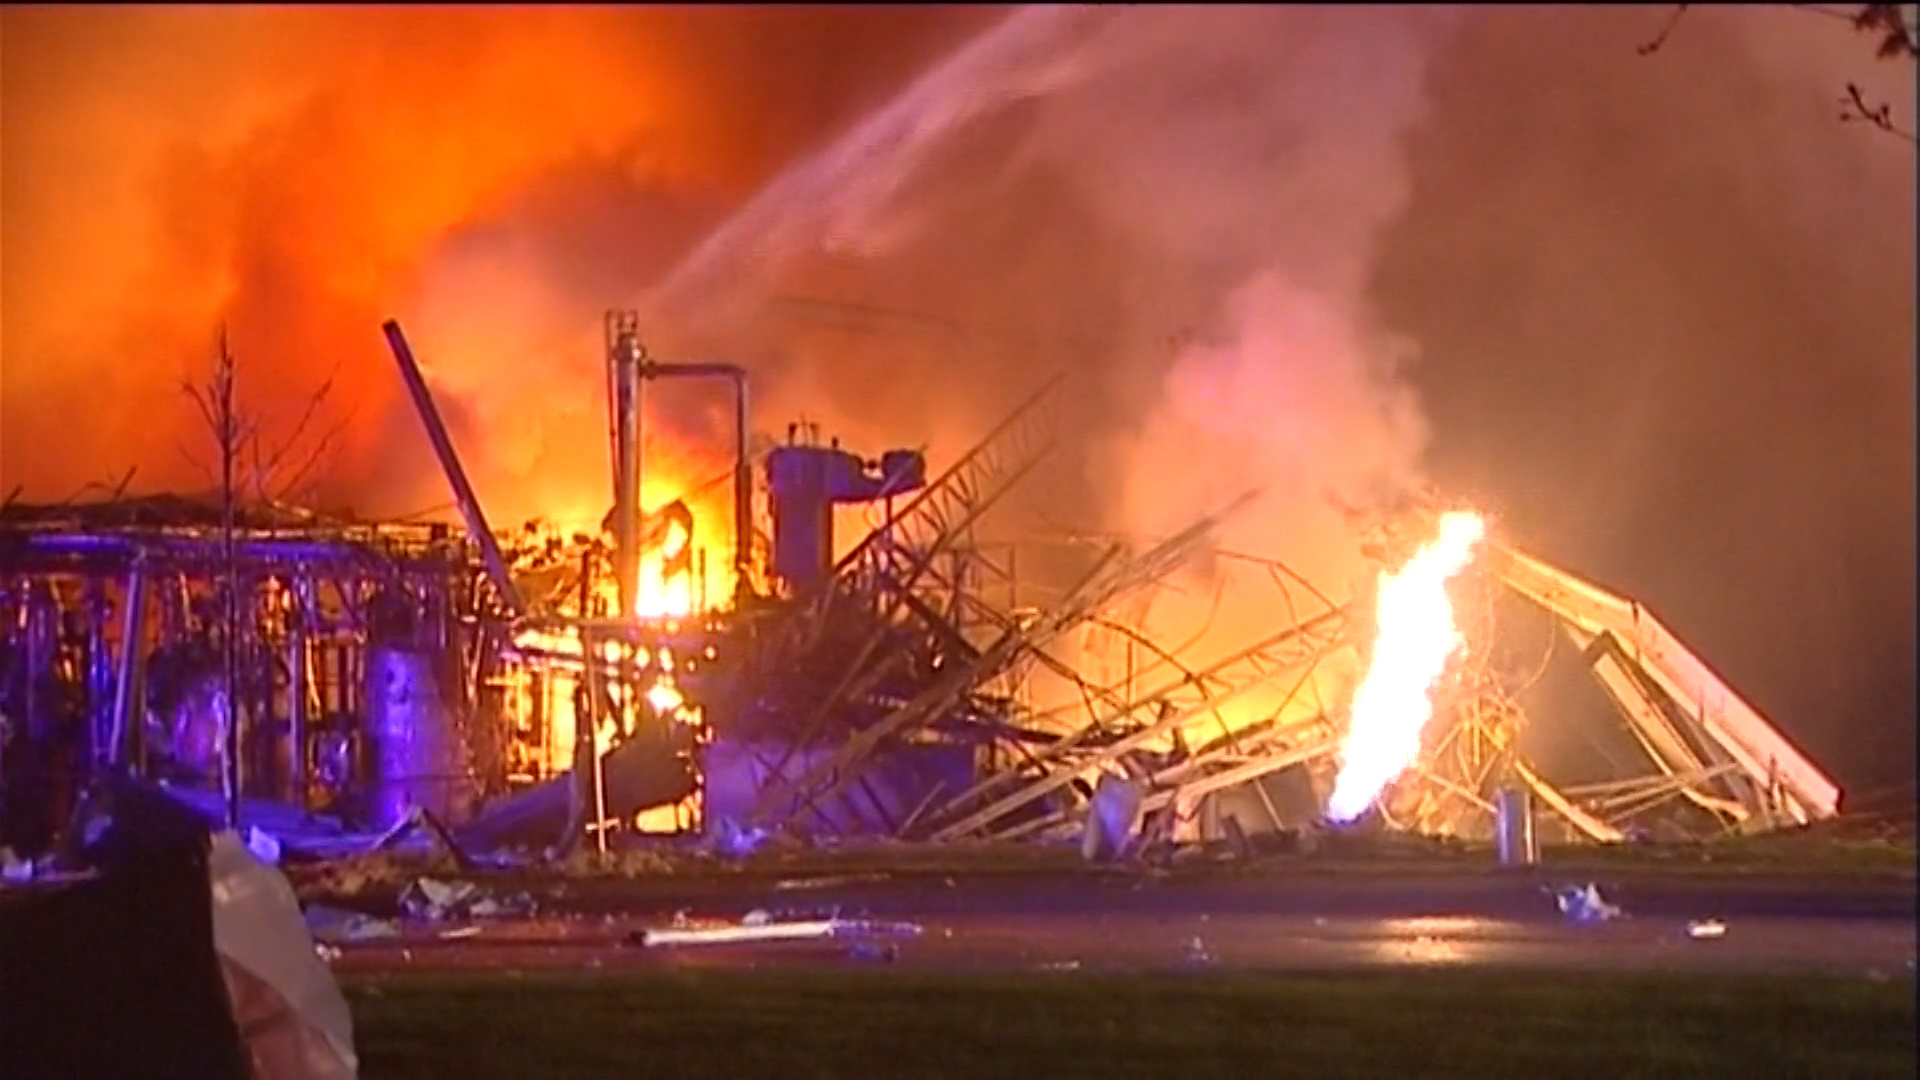 1 dead, 4 others injured after factory explosion near Chicago